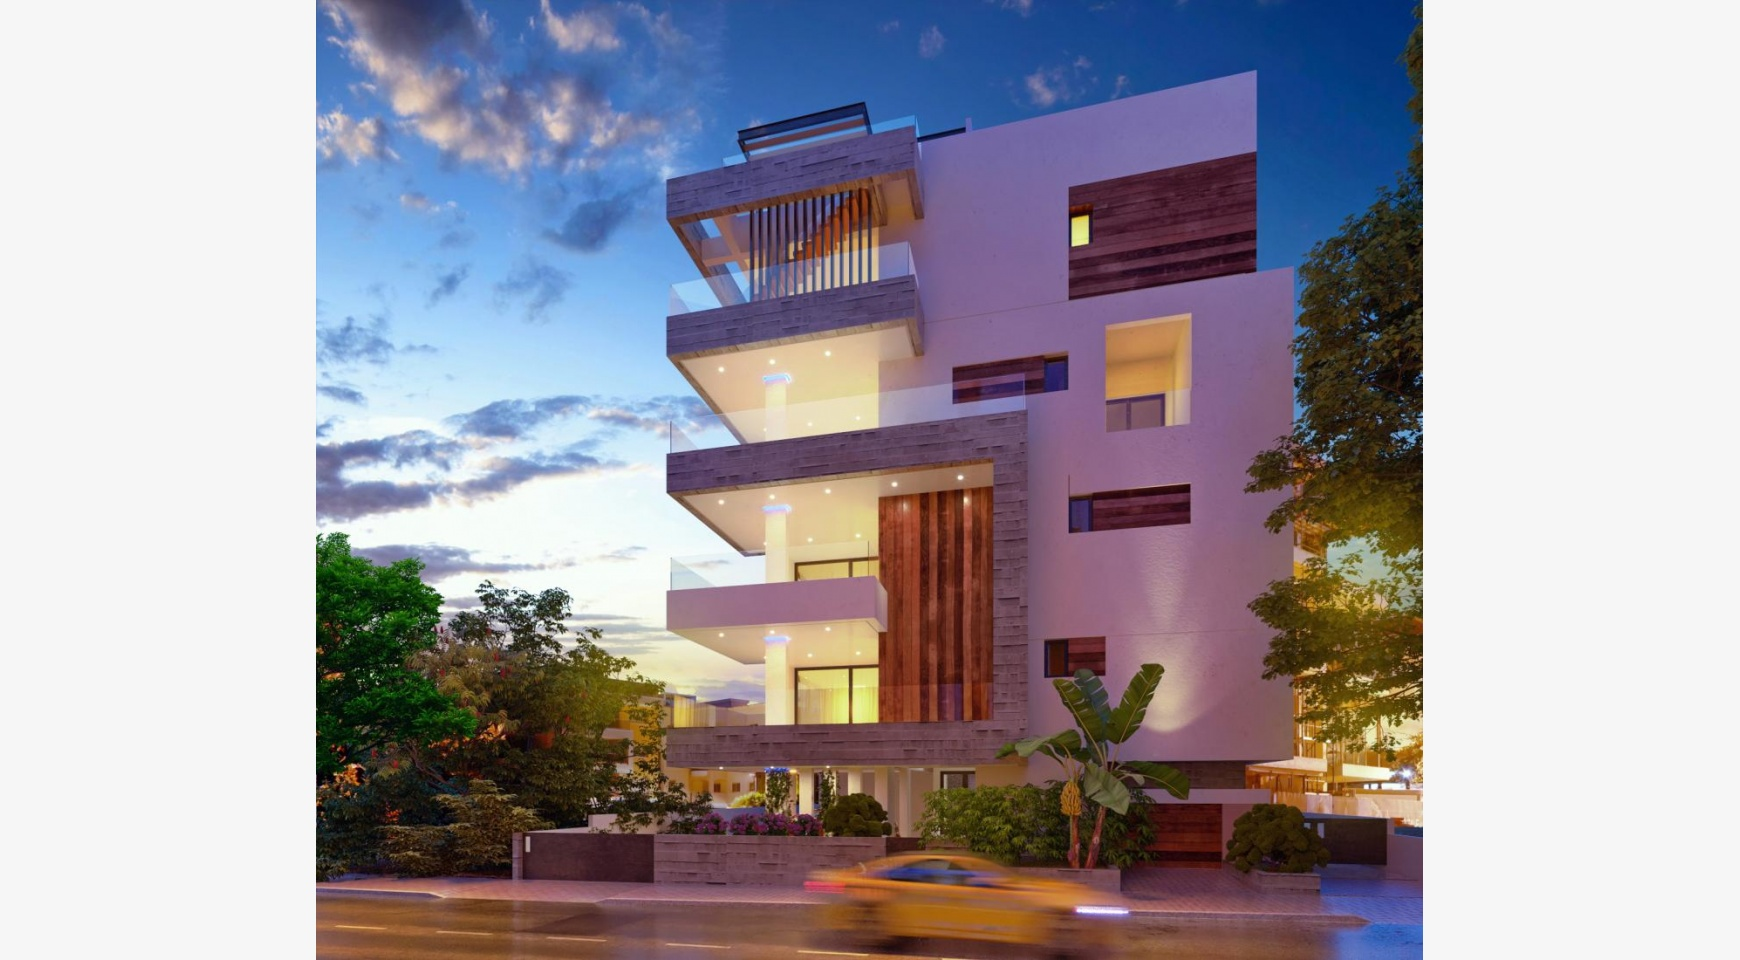 3 Bedroom Penthouse with a Private Pool in a New Contemporary Building near the Sea - 2